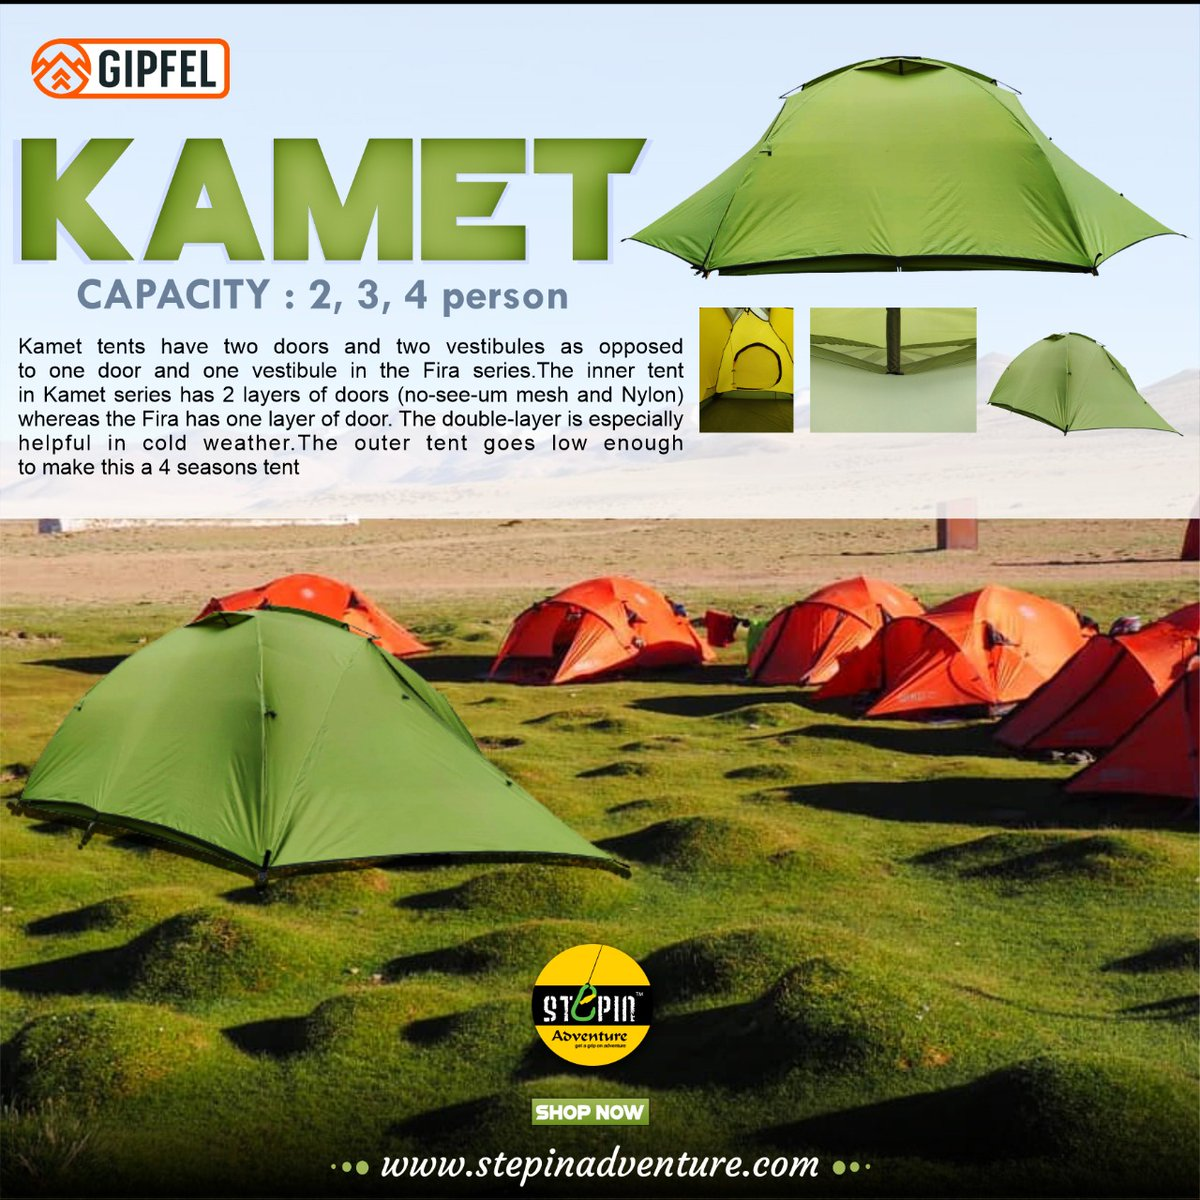 Gipfel Kamet range of tents are a step up from one of our oldest and most popular Fira series. https://t.co/cTxgpASf6P #gipfeltents #tent #climbinginindia #climbingwithhippieinhills #expedition #expeditionlife #gipfelclimbingequipment #himalayas   #treklife #treklikealocal https://t.co/QFSOcS8Np8